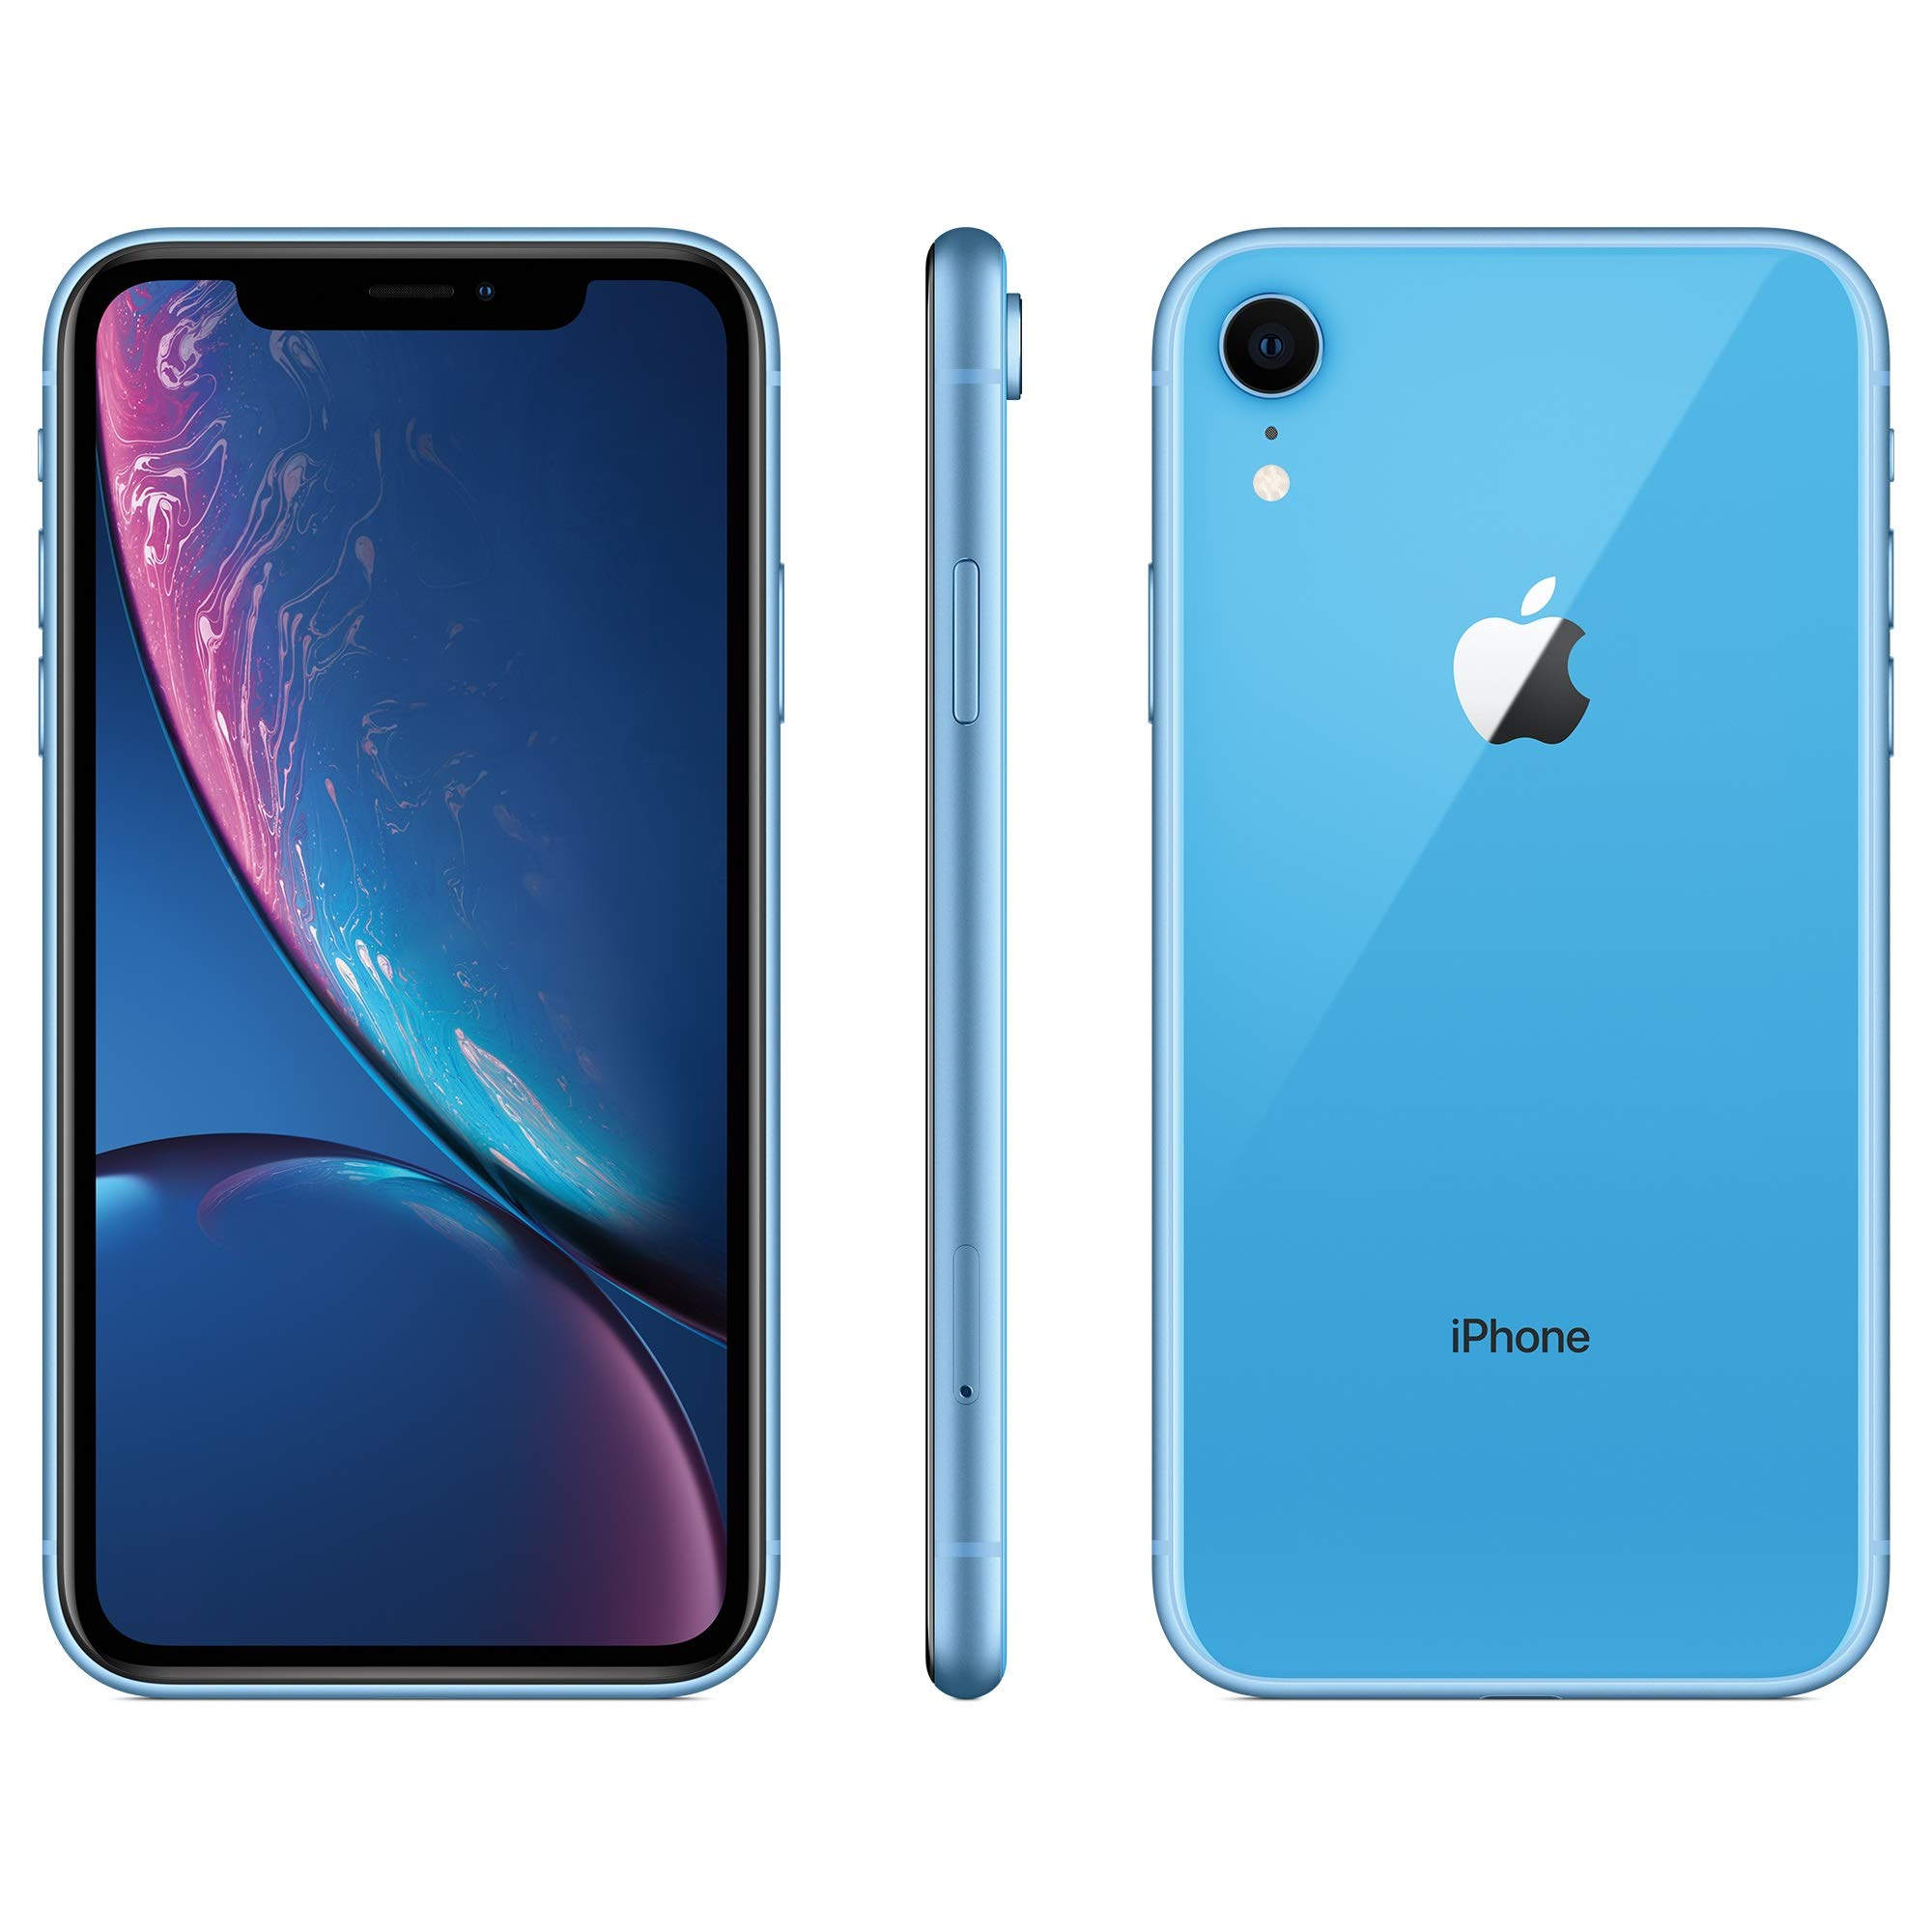 Apple iPhone XR, 128GB, Blue - For T-Mobile (Renewed)